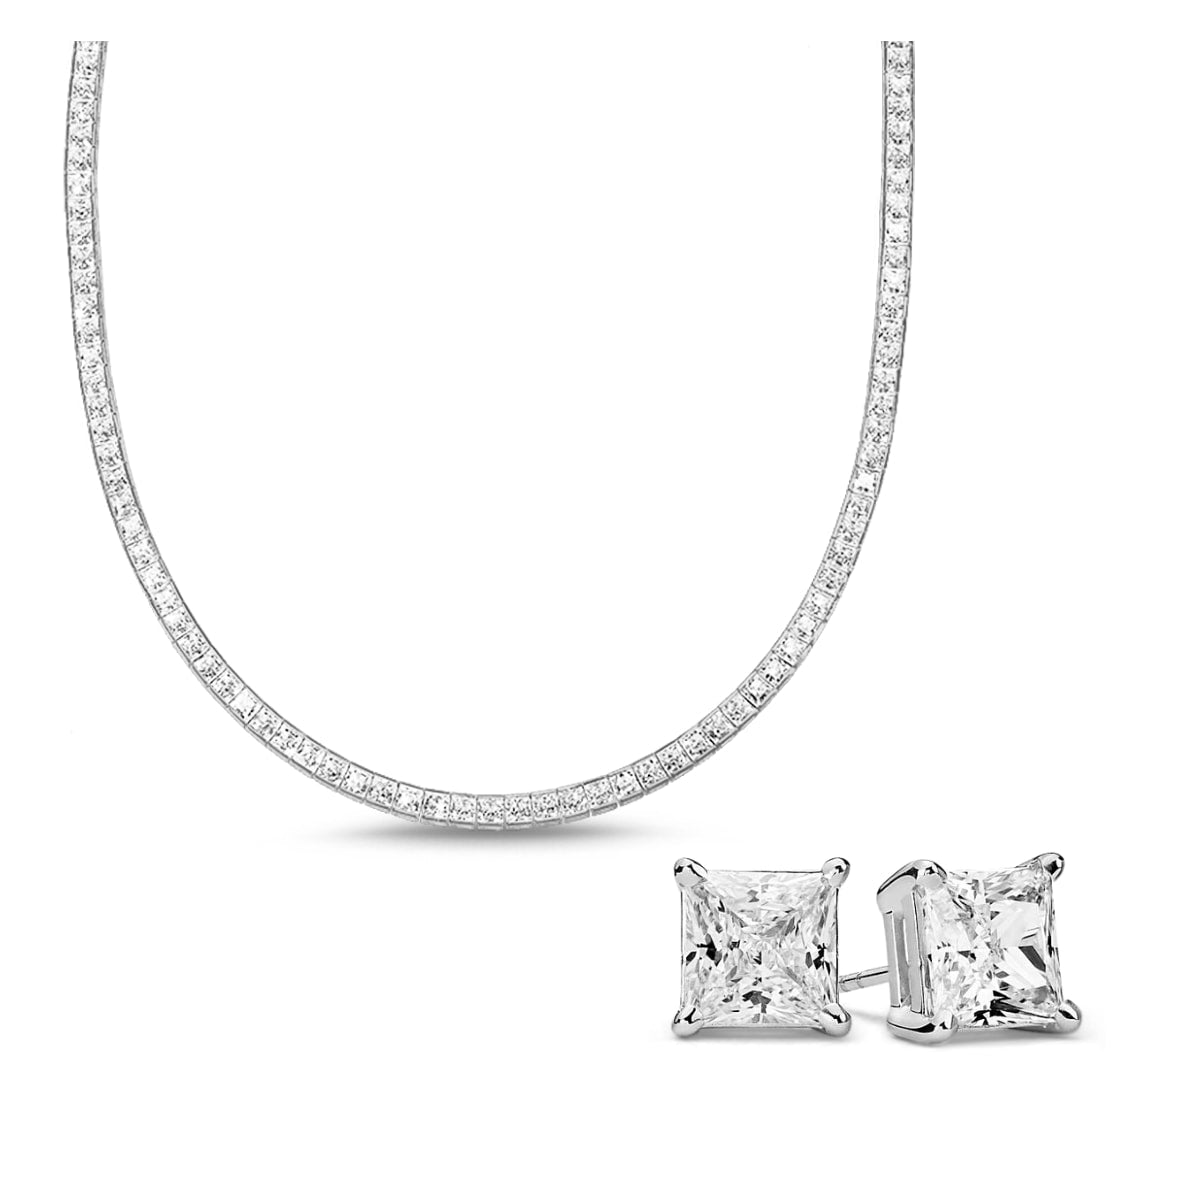 [PROMO BUNDLE] Hariette Princess Necklace Earrings Diamond Set